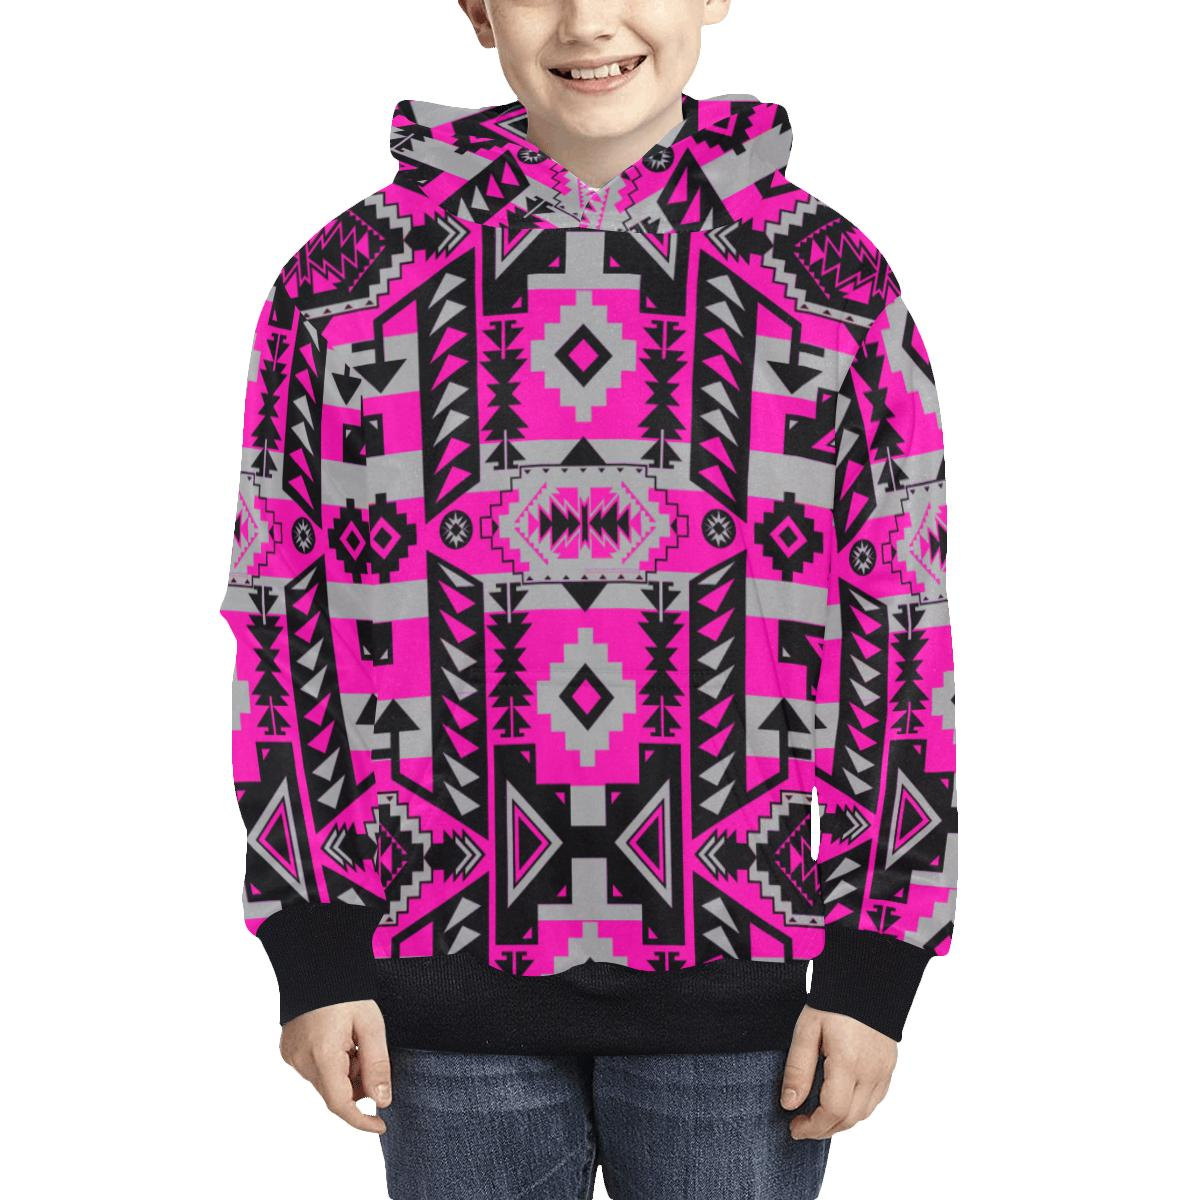 Chiefs Mountain Sunset Kids' All Over Print Hoodie (Model H38) Kids' AOP Hoodie (H38) e-joyer